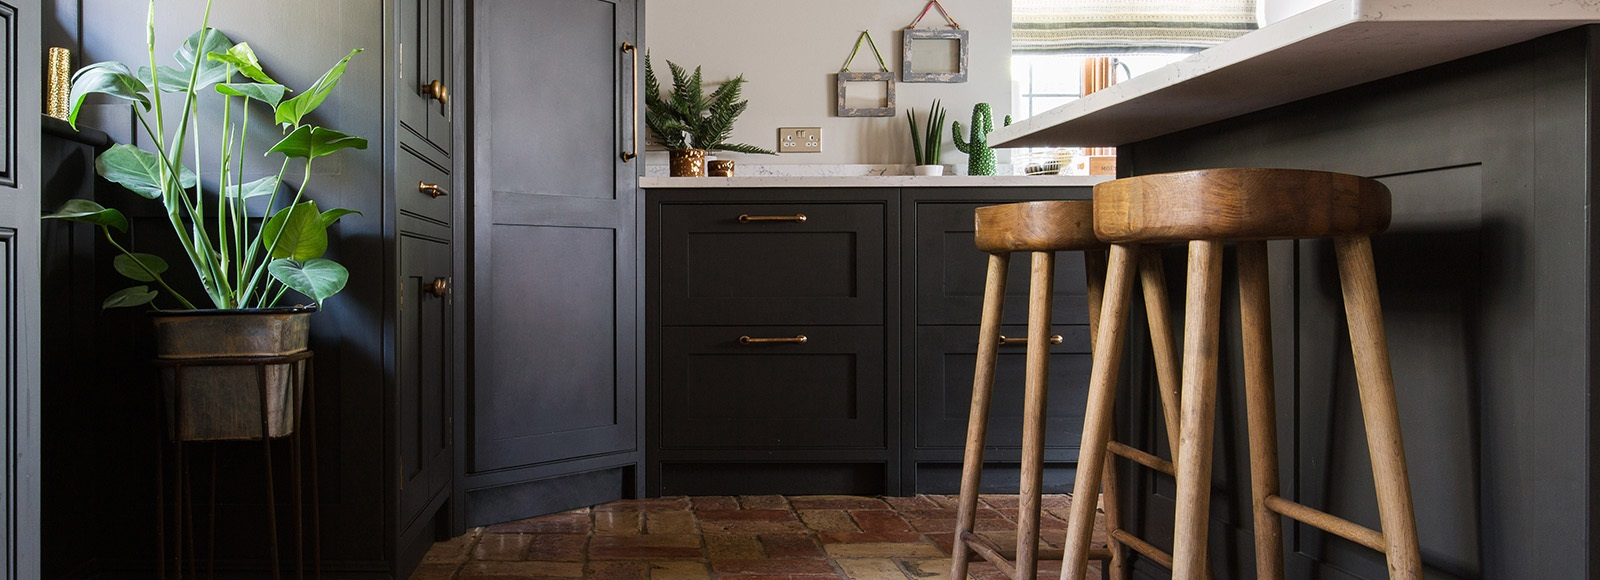 Bespoke Shaker Kitchen - Burlanes bespoke Wellsdown kitchen cabinets with bronze hardware.